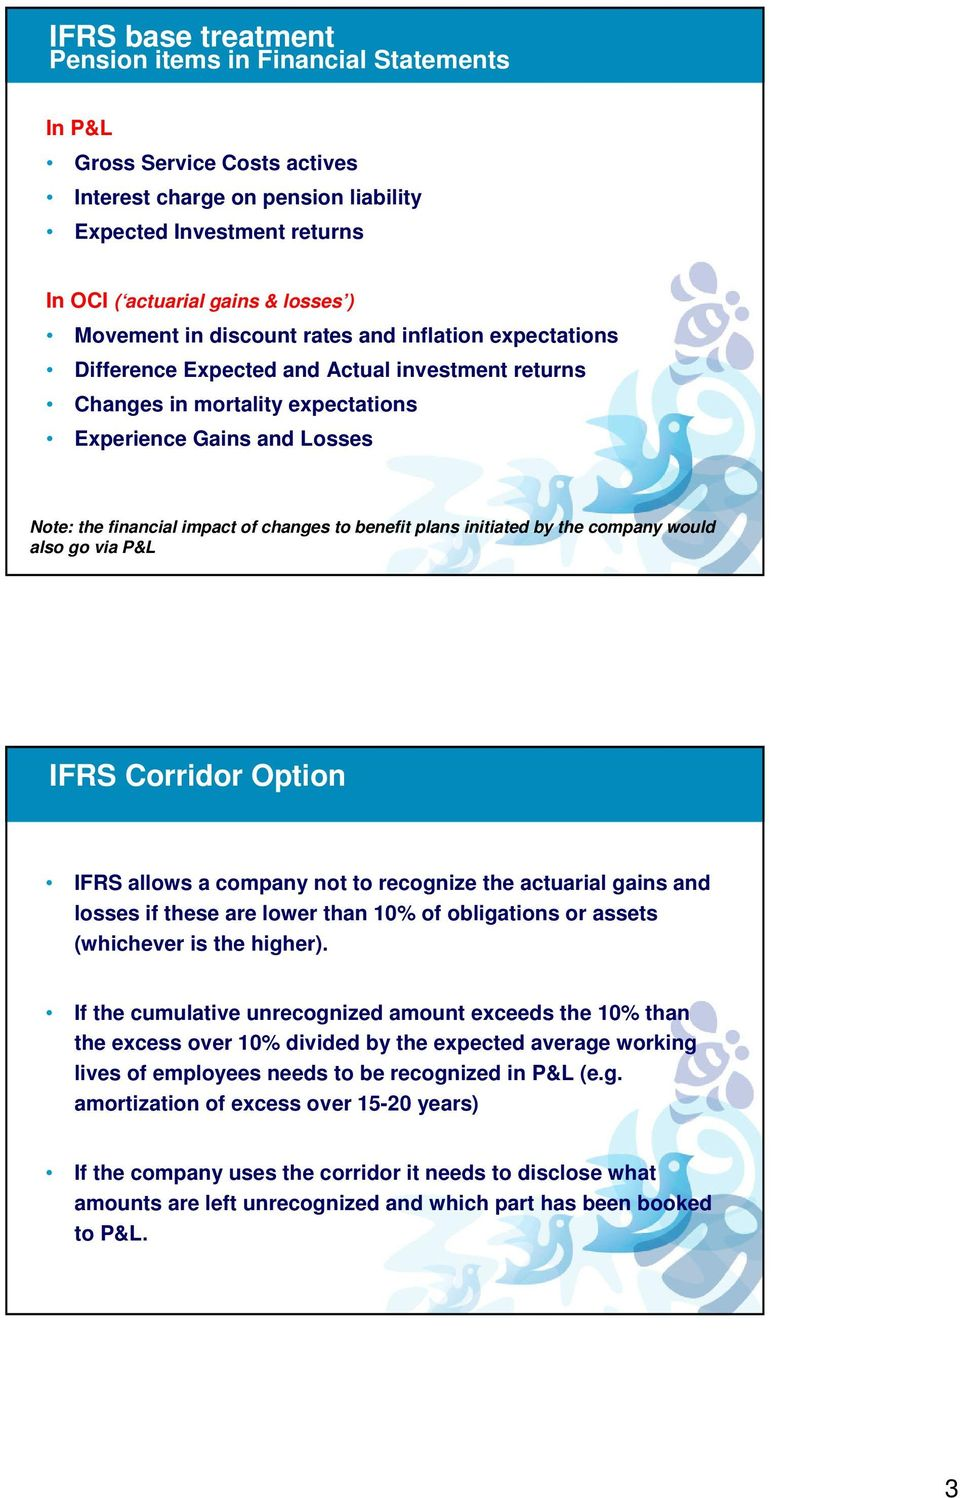 changes to benefit plans initiated by the company would also go via P&L IFRS Corridor Option IFRS allows a company not to recognize the actuarial gains and losses if these are lower than 10% of